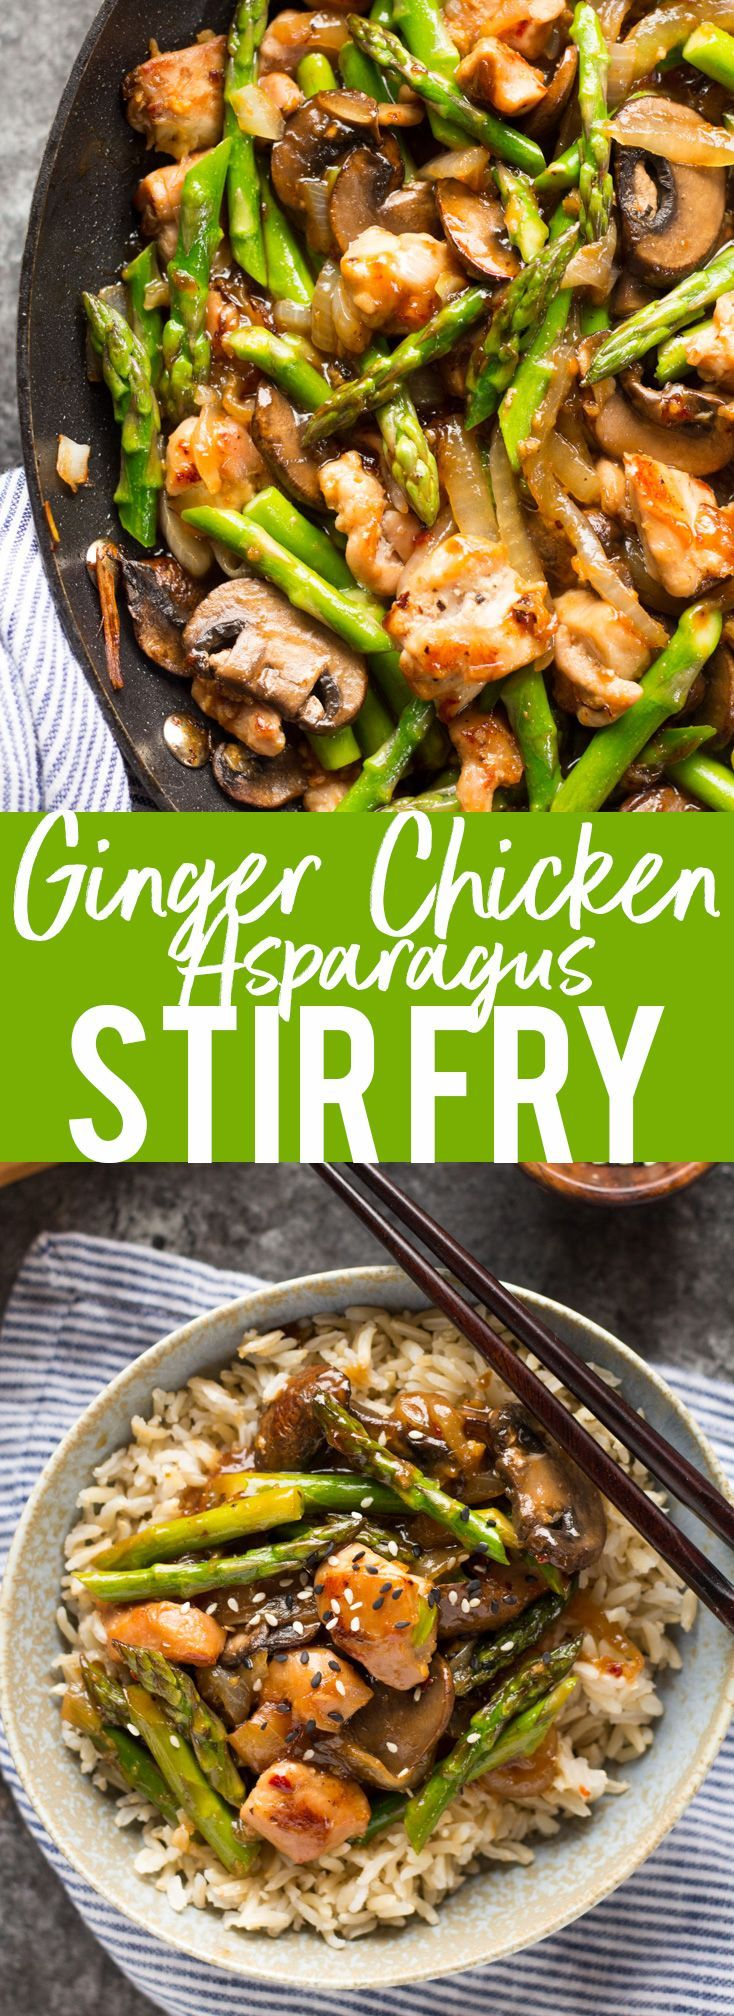 This Ginger Chicken Asparagus Stir Fry is a quick and healthy dinner.